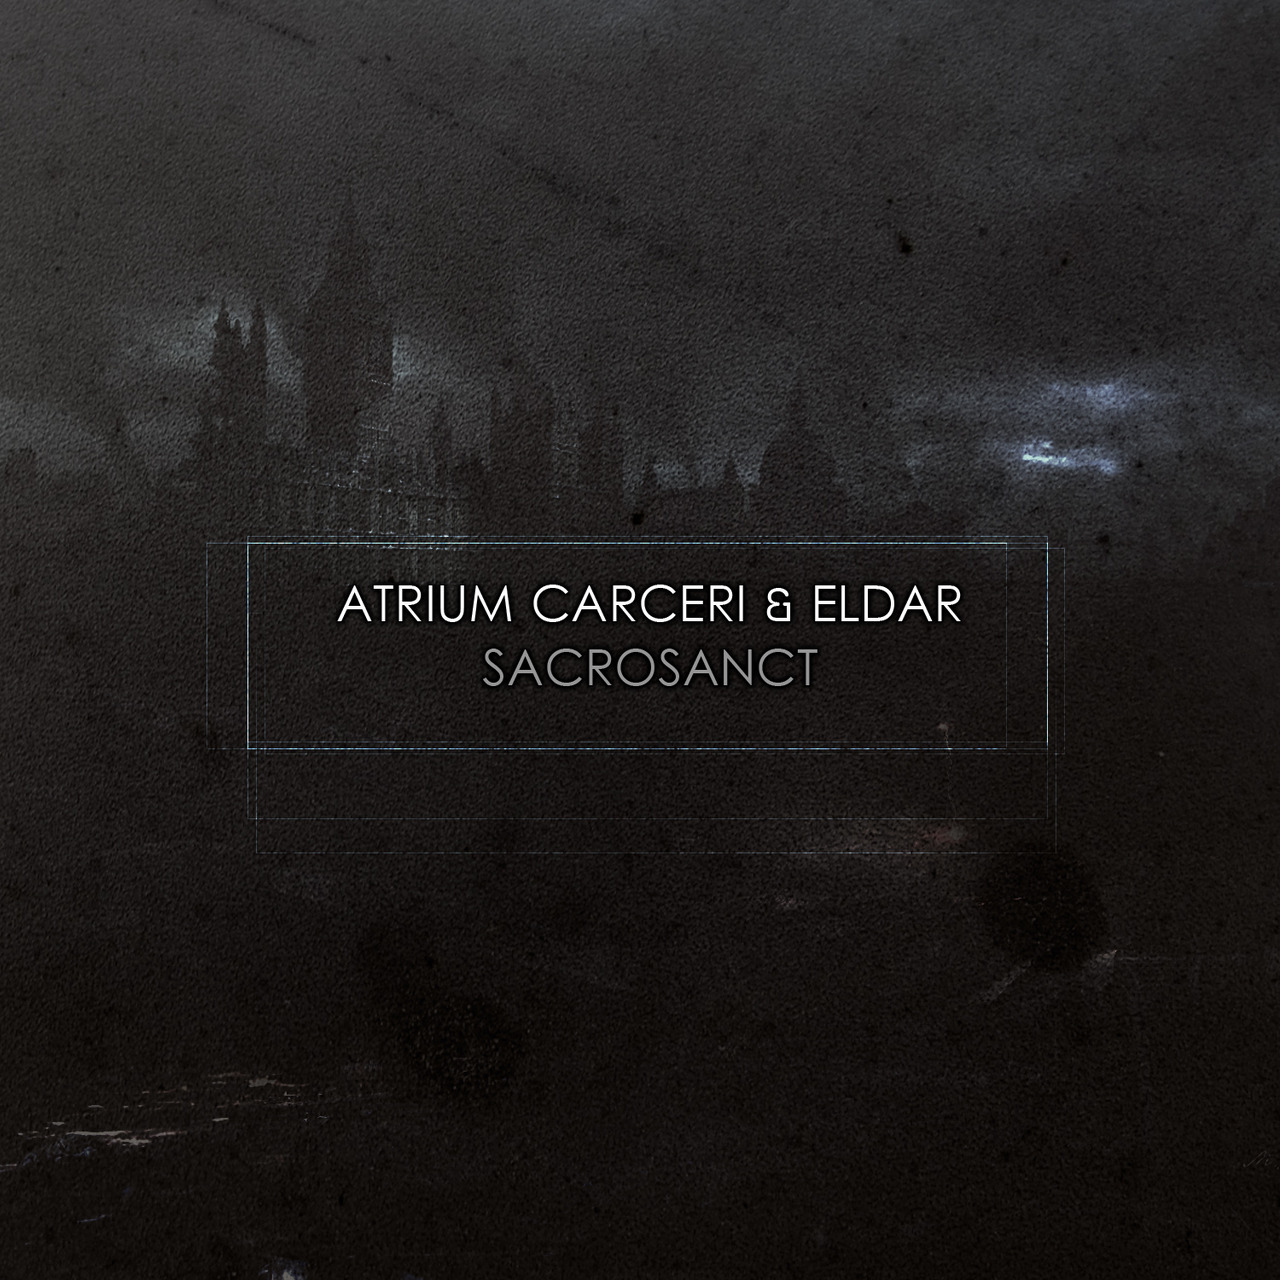 Atrium Carceri & Eldar - Sacrosanct  Atrium Carceri & Eldar, two of the genres most prolific artists, team up for this fantastic dark ambient release. The deep rumblings and future visions of Atrium Carceri combined with the whispers of historical enlightenment that is Eldar creates a vacuum in time where the future and past coexist. Where nothing and everything is sacred, where the webs of powerful bloodlines are woven and where humanity crumbles.  A 9 track masterpiece in 24bit released on Cryo Chamber.  24 bit FLAC available, headphones recommended.  Comes with a 4 page HD booklet  DOWNLOAD - $7 USD   credits releases 07 August 2012 Produced by: Simon Heath, Marc Merinee, Mercé Spica  Mastering: Simon Heath  Artwork: Simon Heath